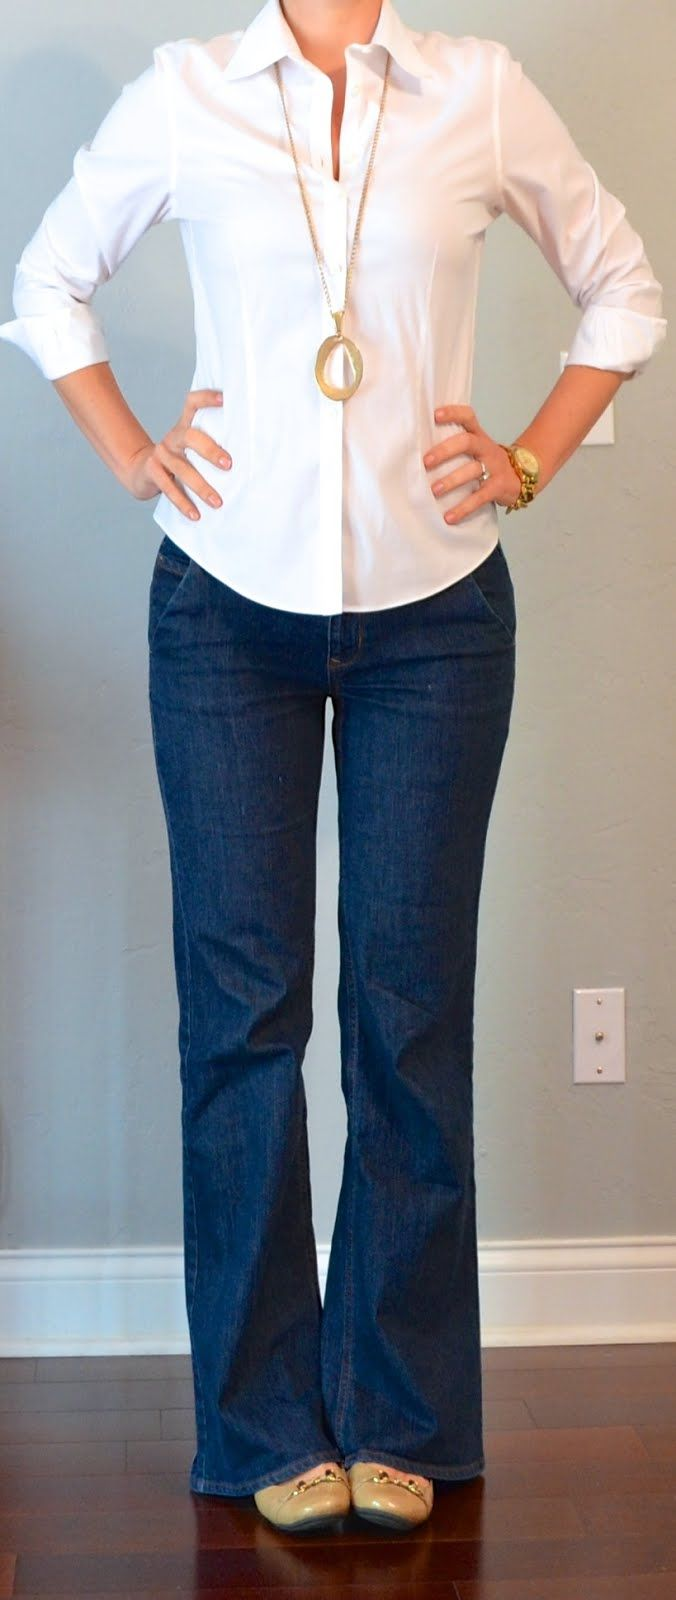 Outfit Posts: (outfit 14) one suitcase: business casual capsule wardrobe  outfitposts.blogspot.com